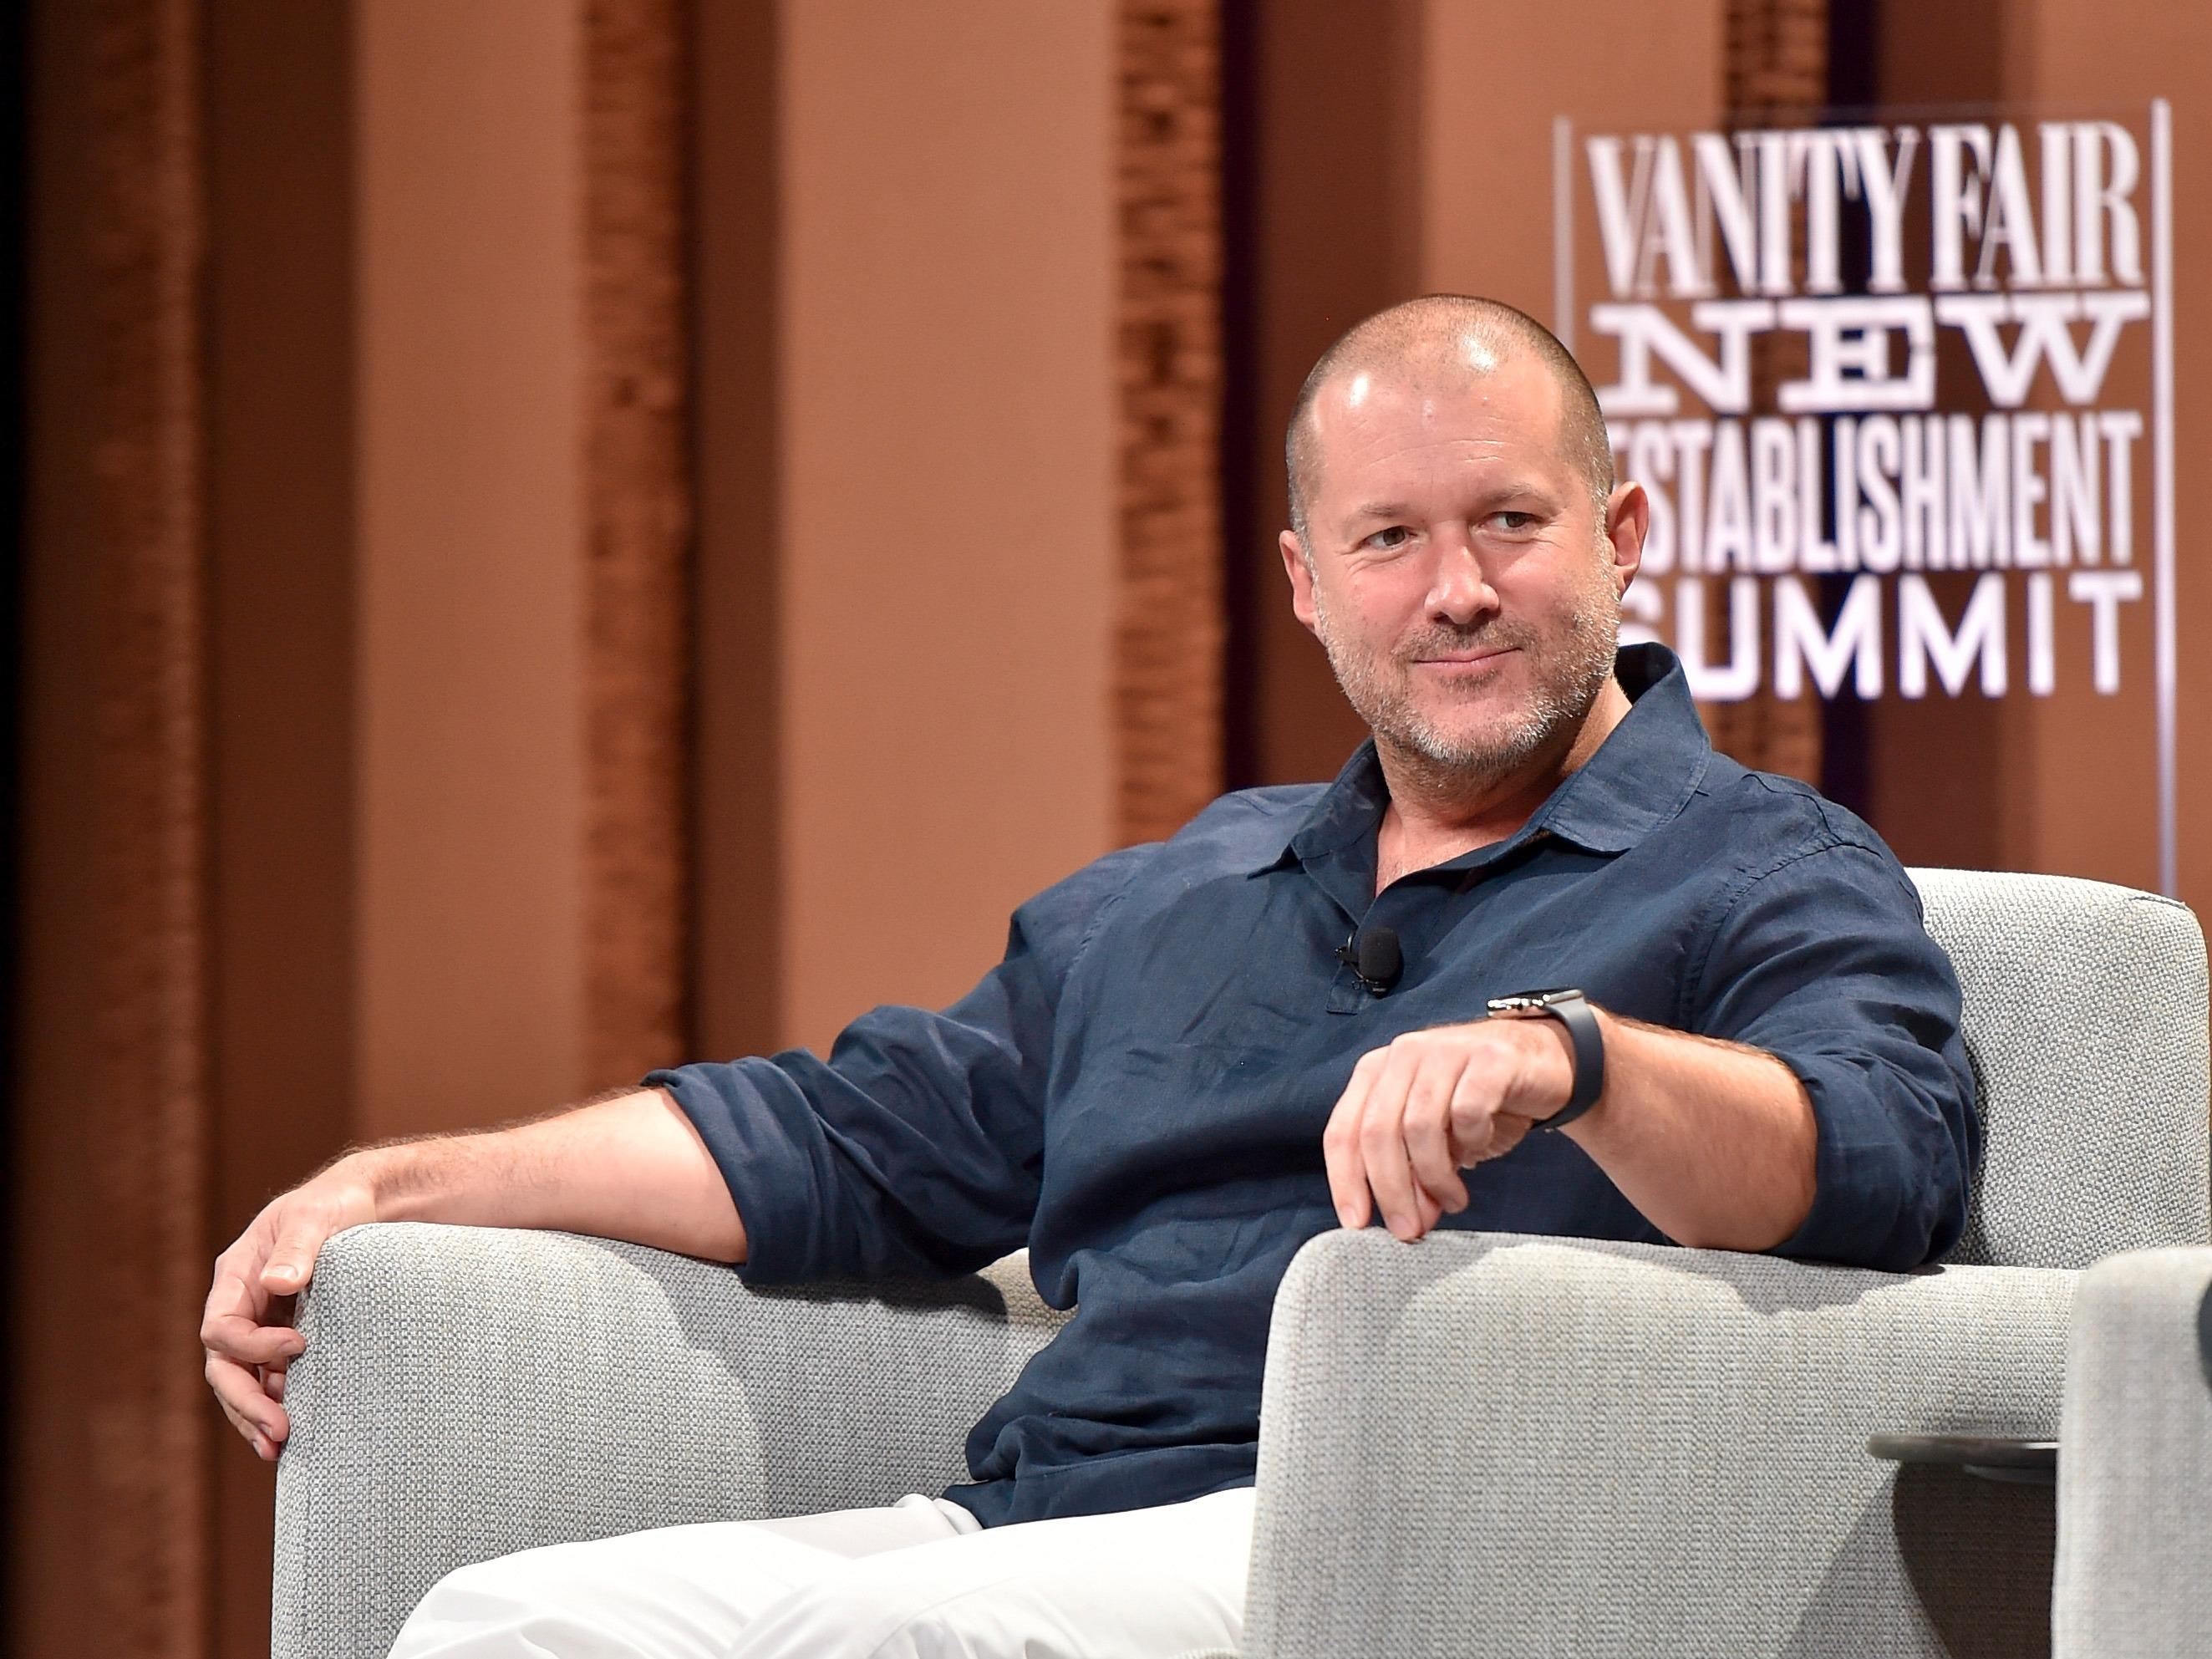 Steve Jobs used to ask Jony Ive the same question almost every day